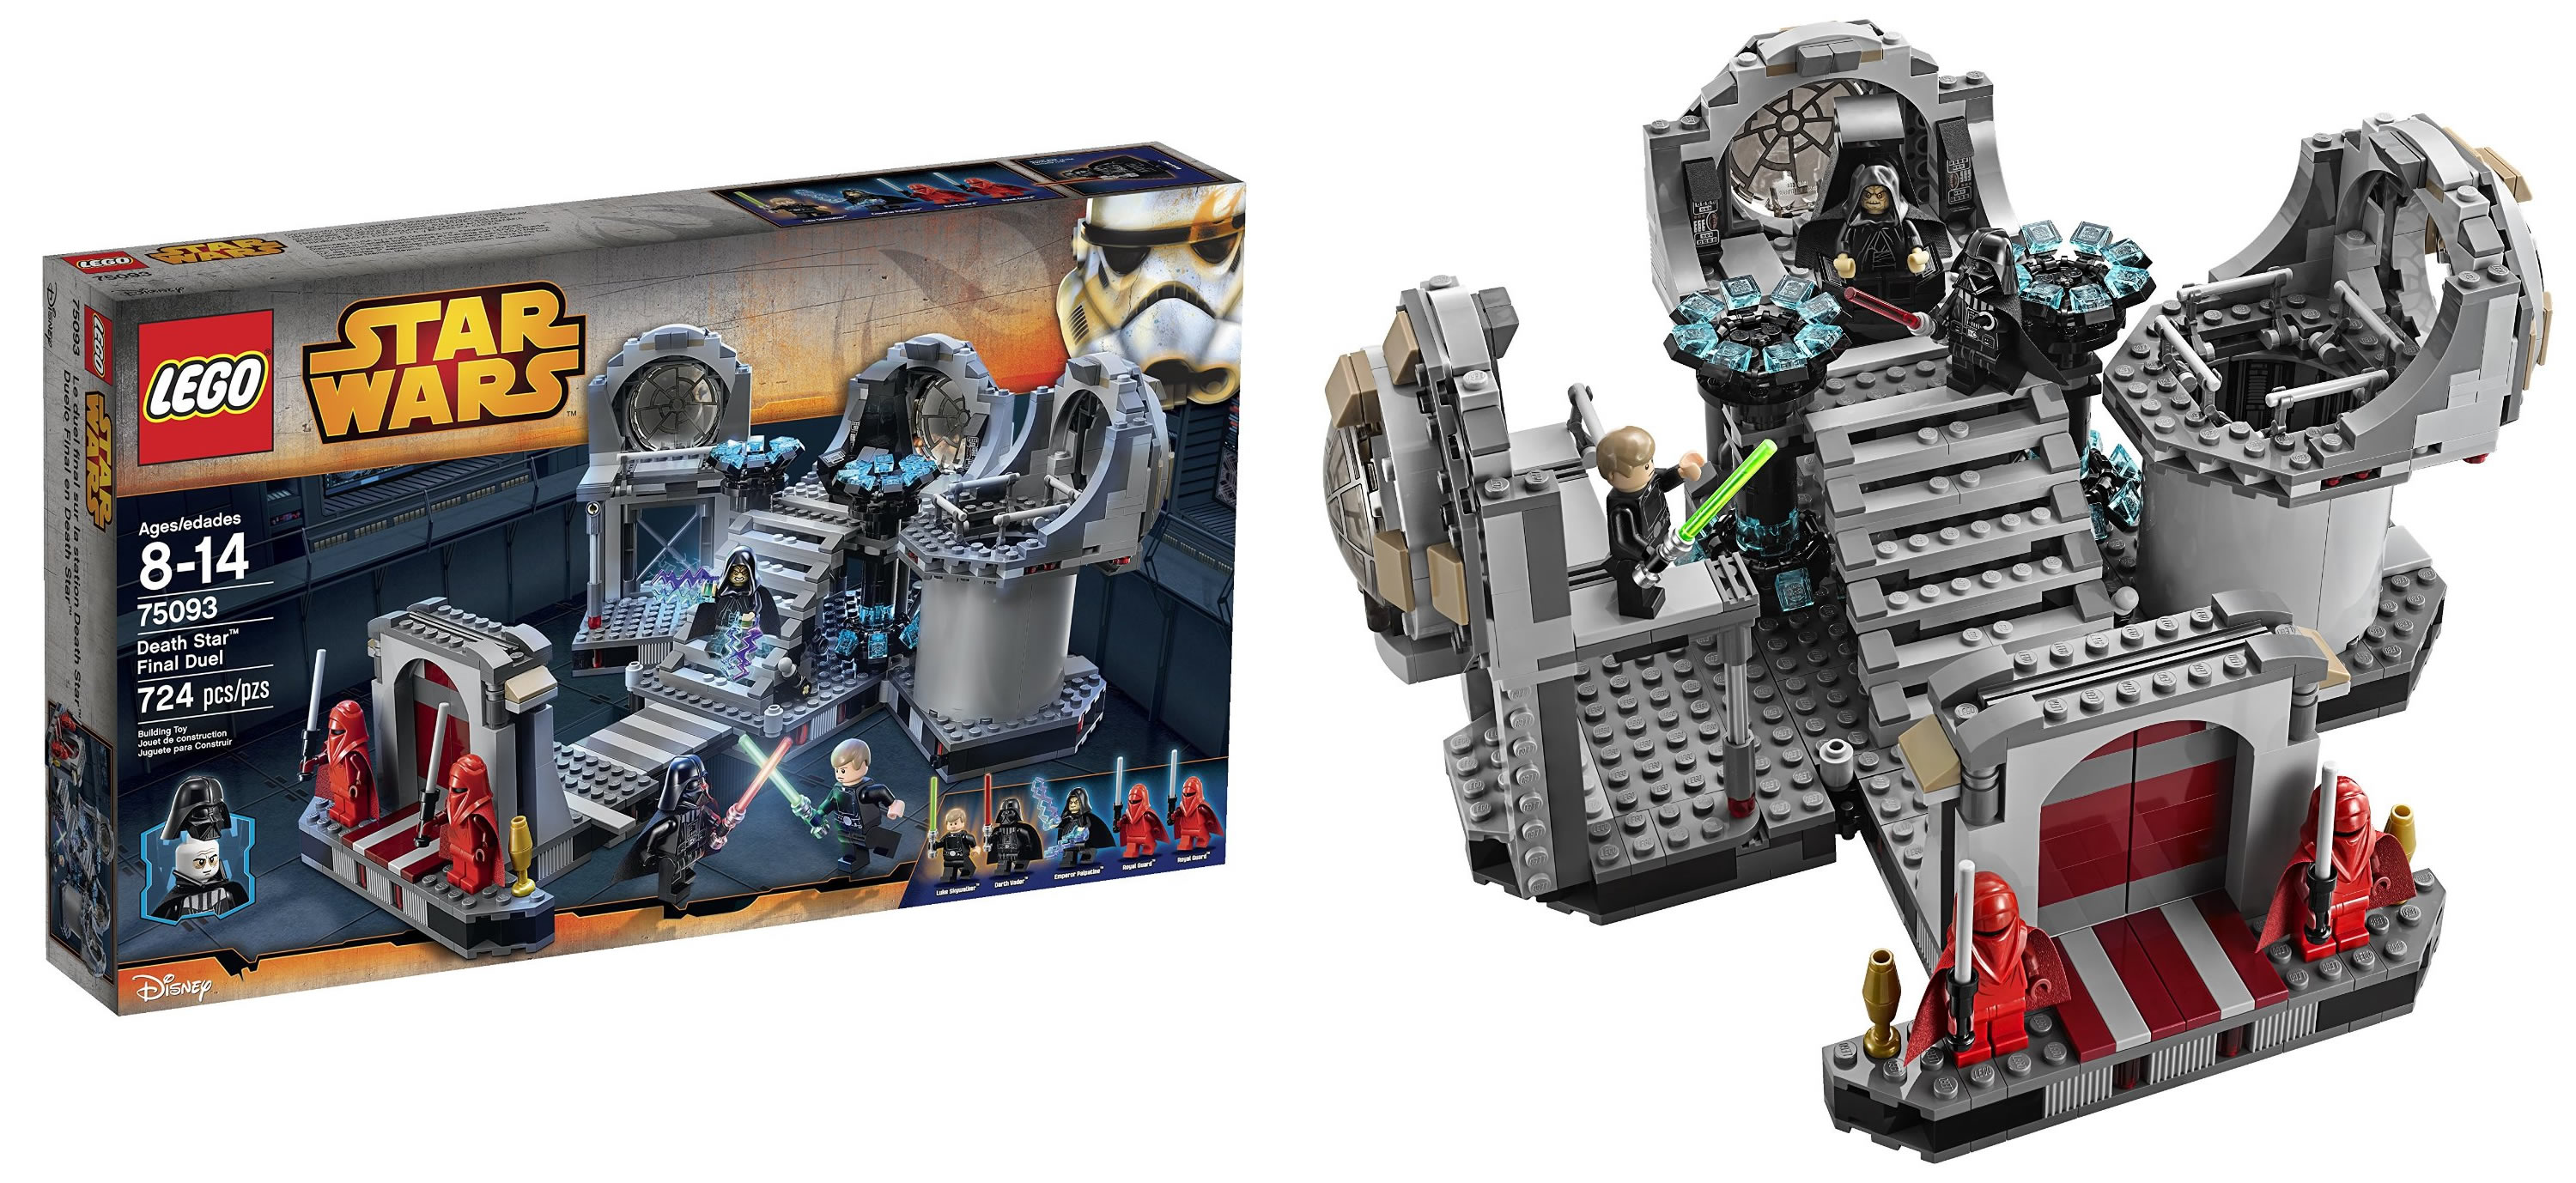 Build It You Must The 10 Best Star Wars Lego Sets